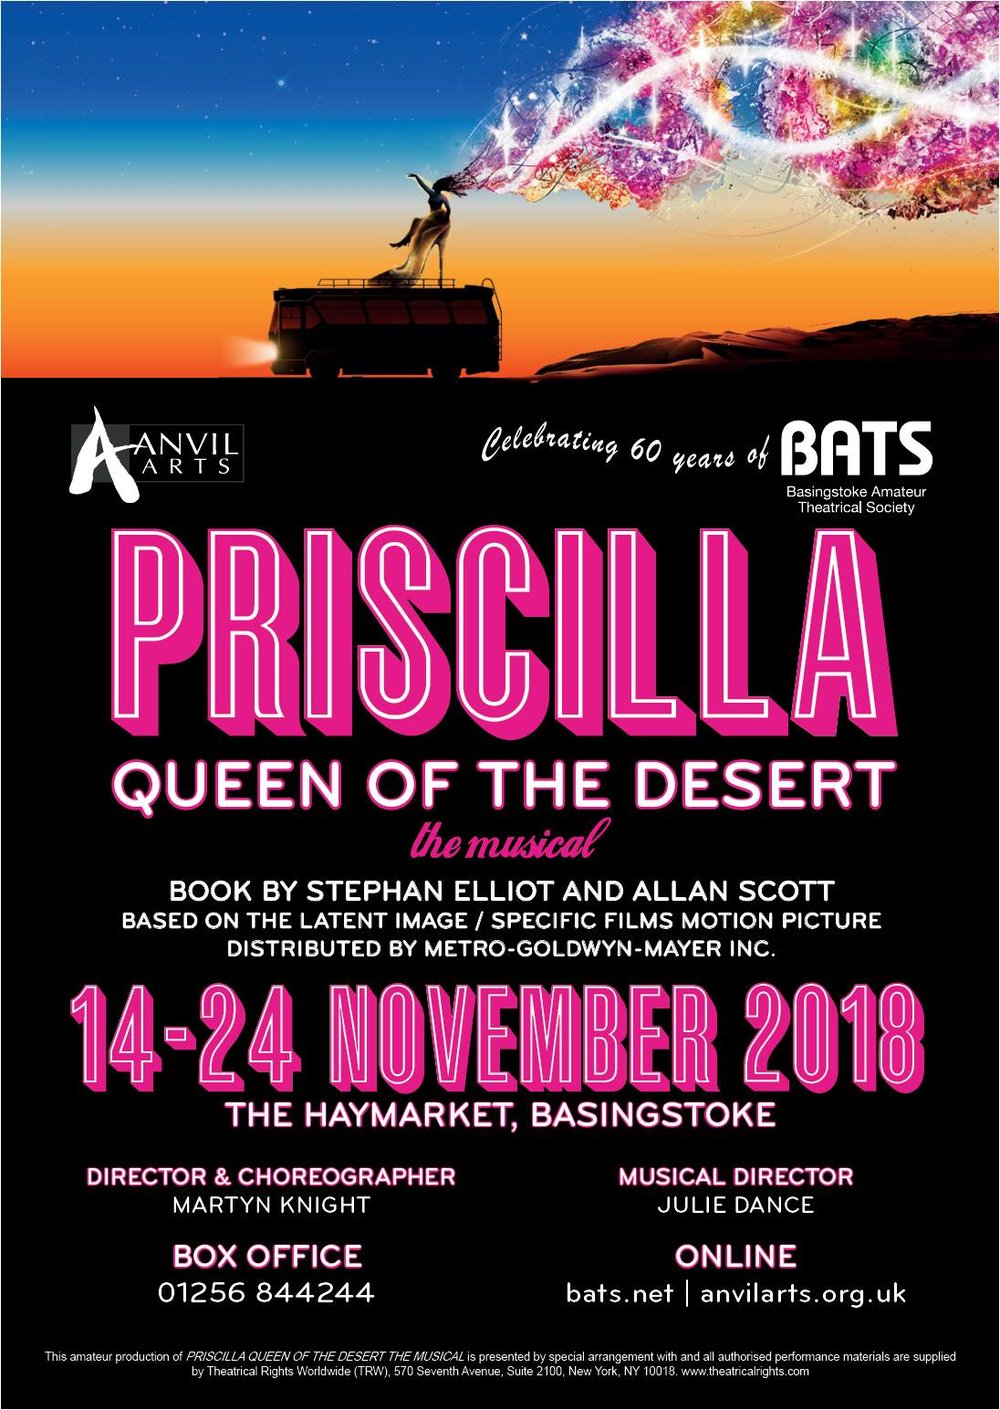 Priscilla Queen of the Desert - Nov 2018